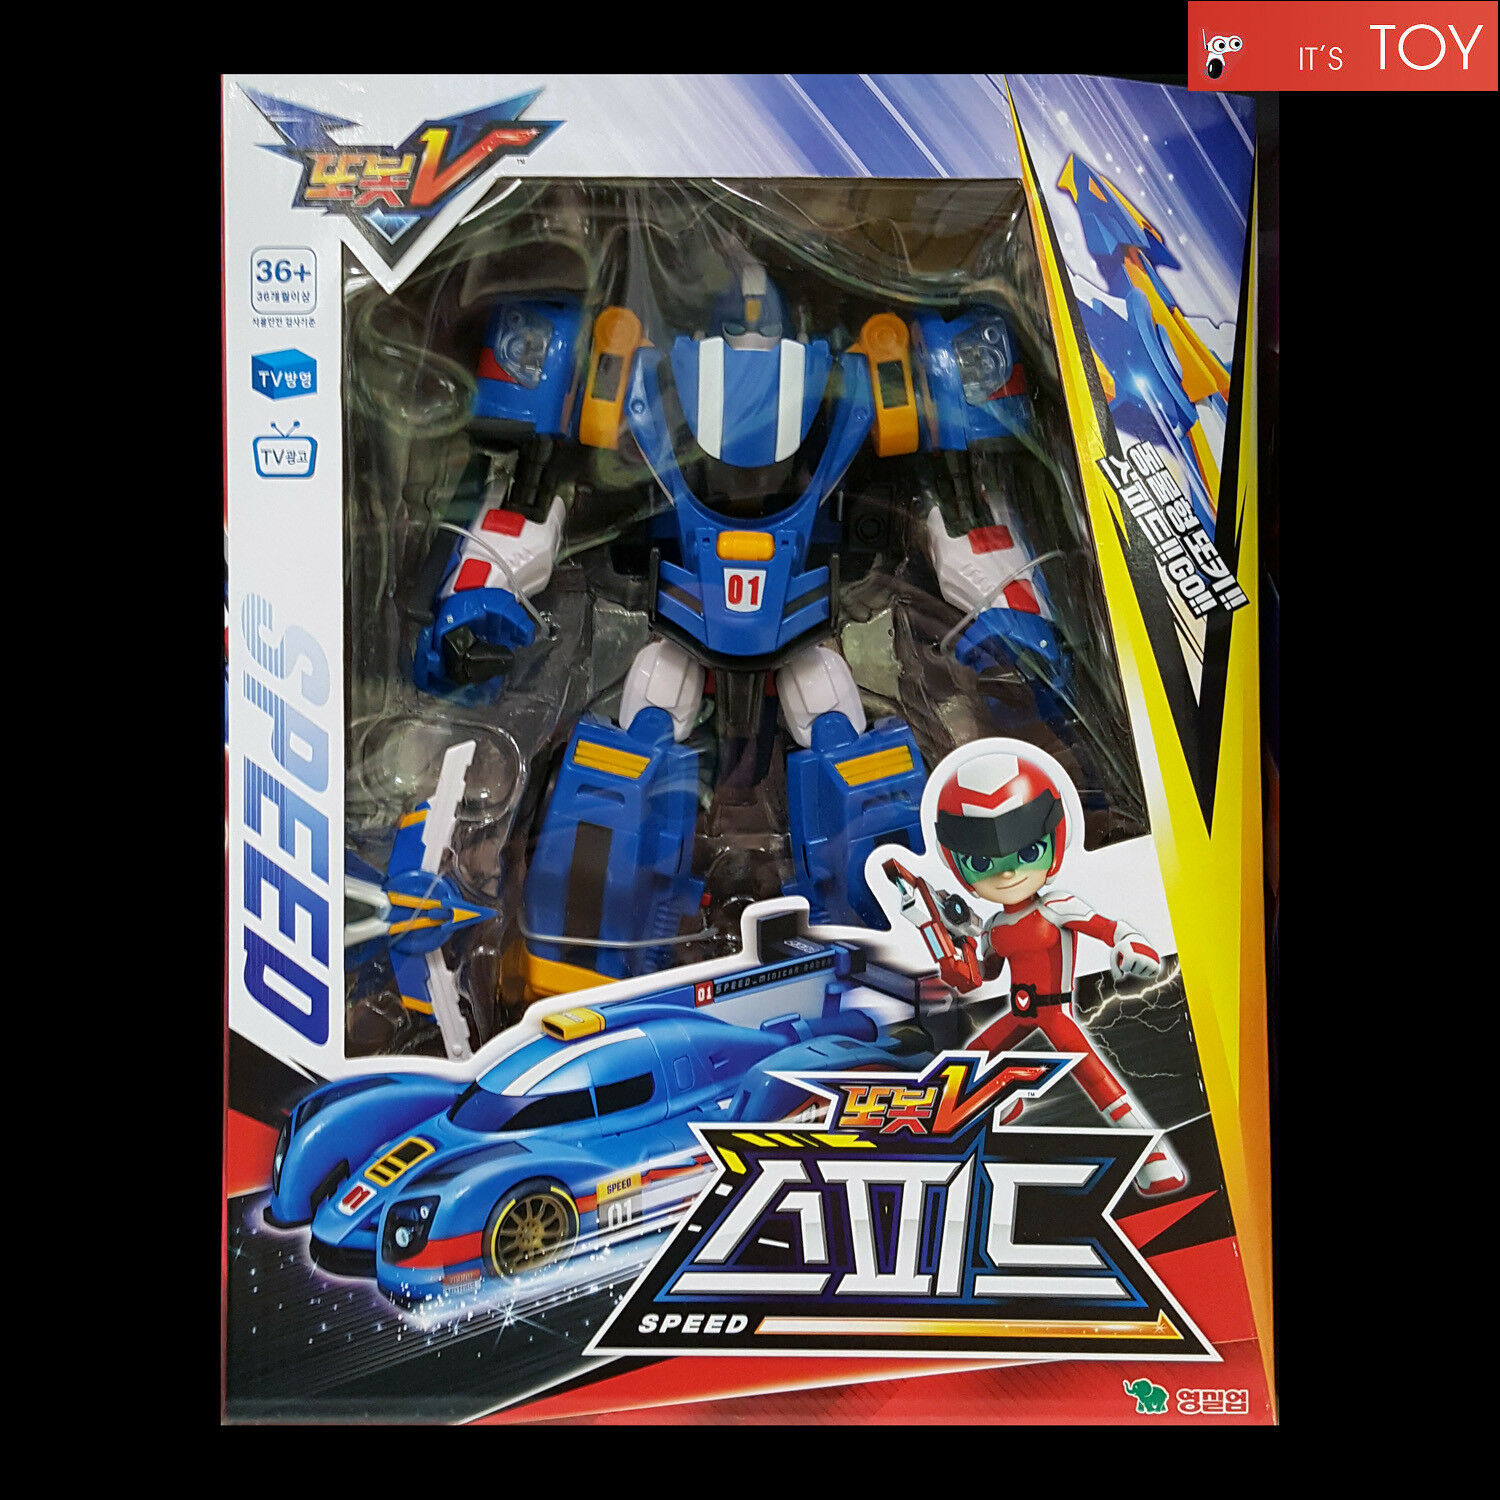 TOBOT V SPEED bluee Transformer Transforming Space Robot Sports Car Toy 2018 New